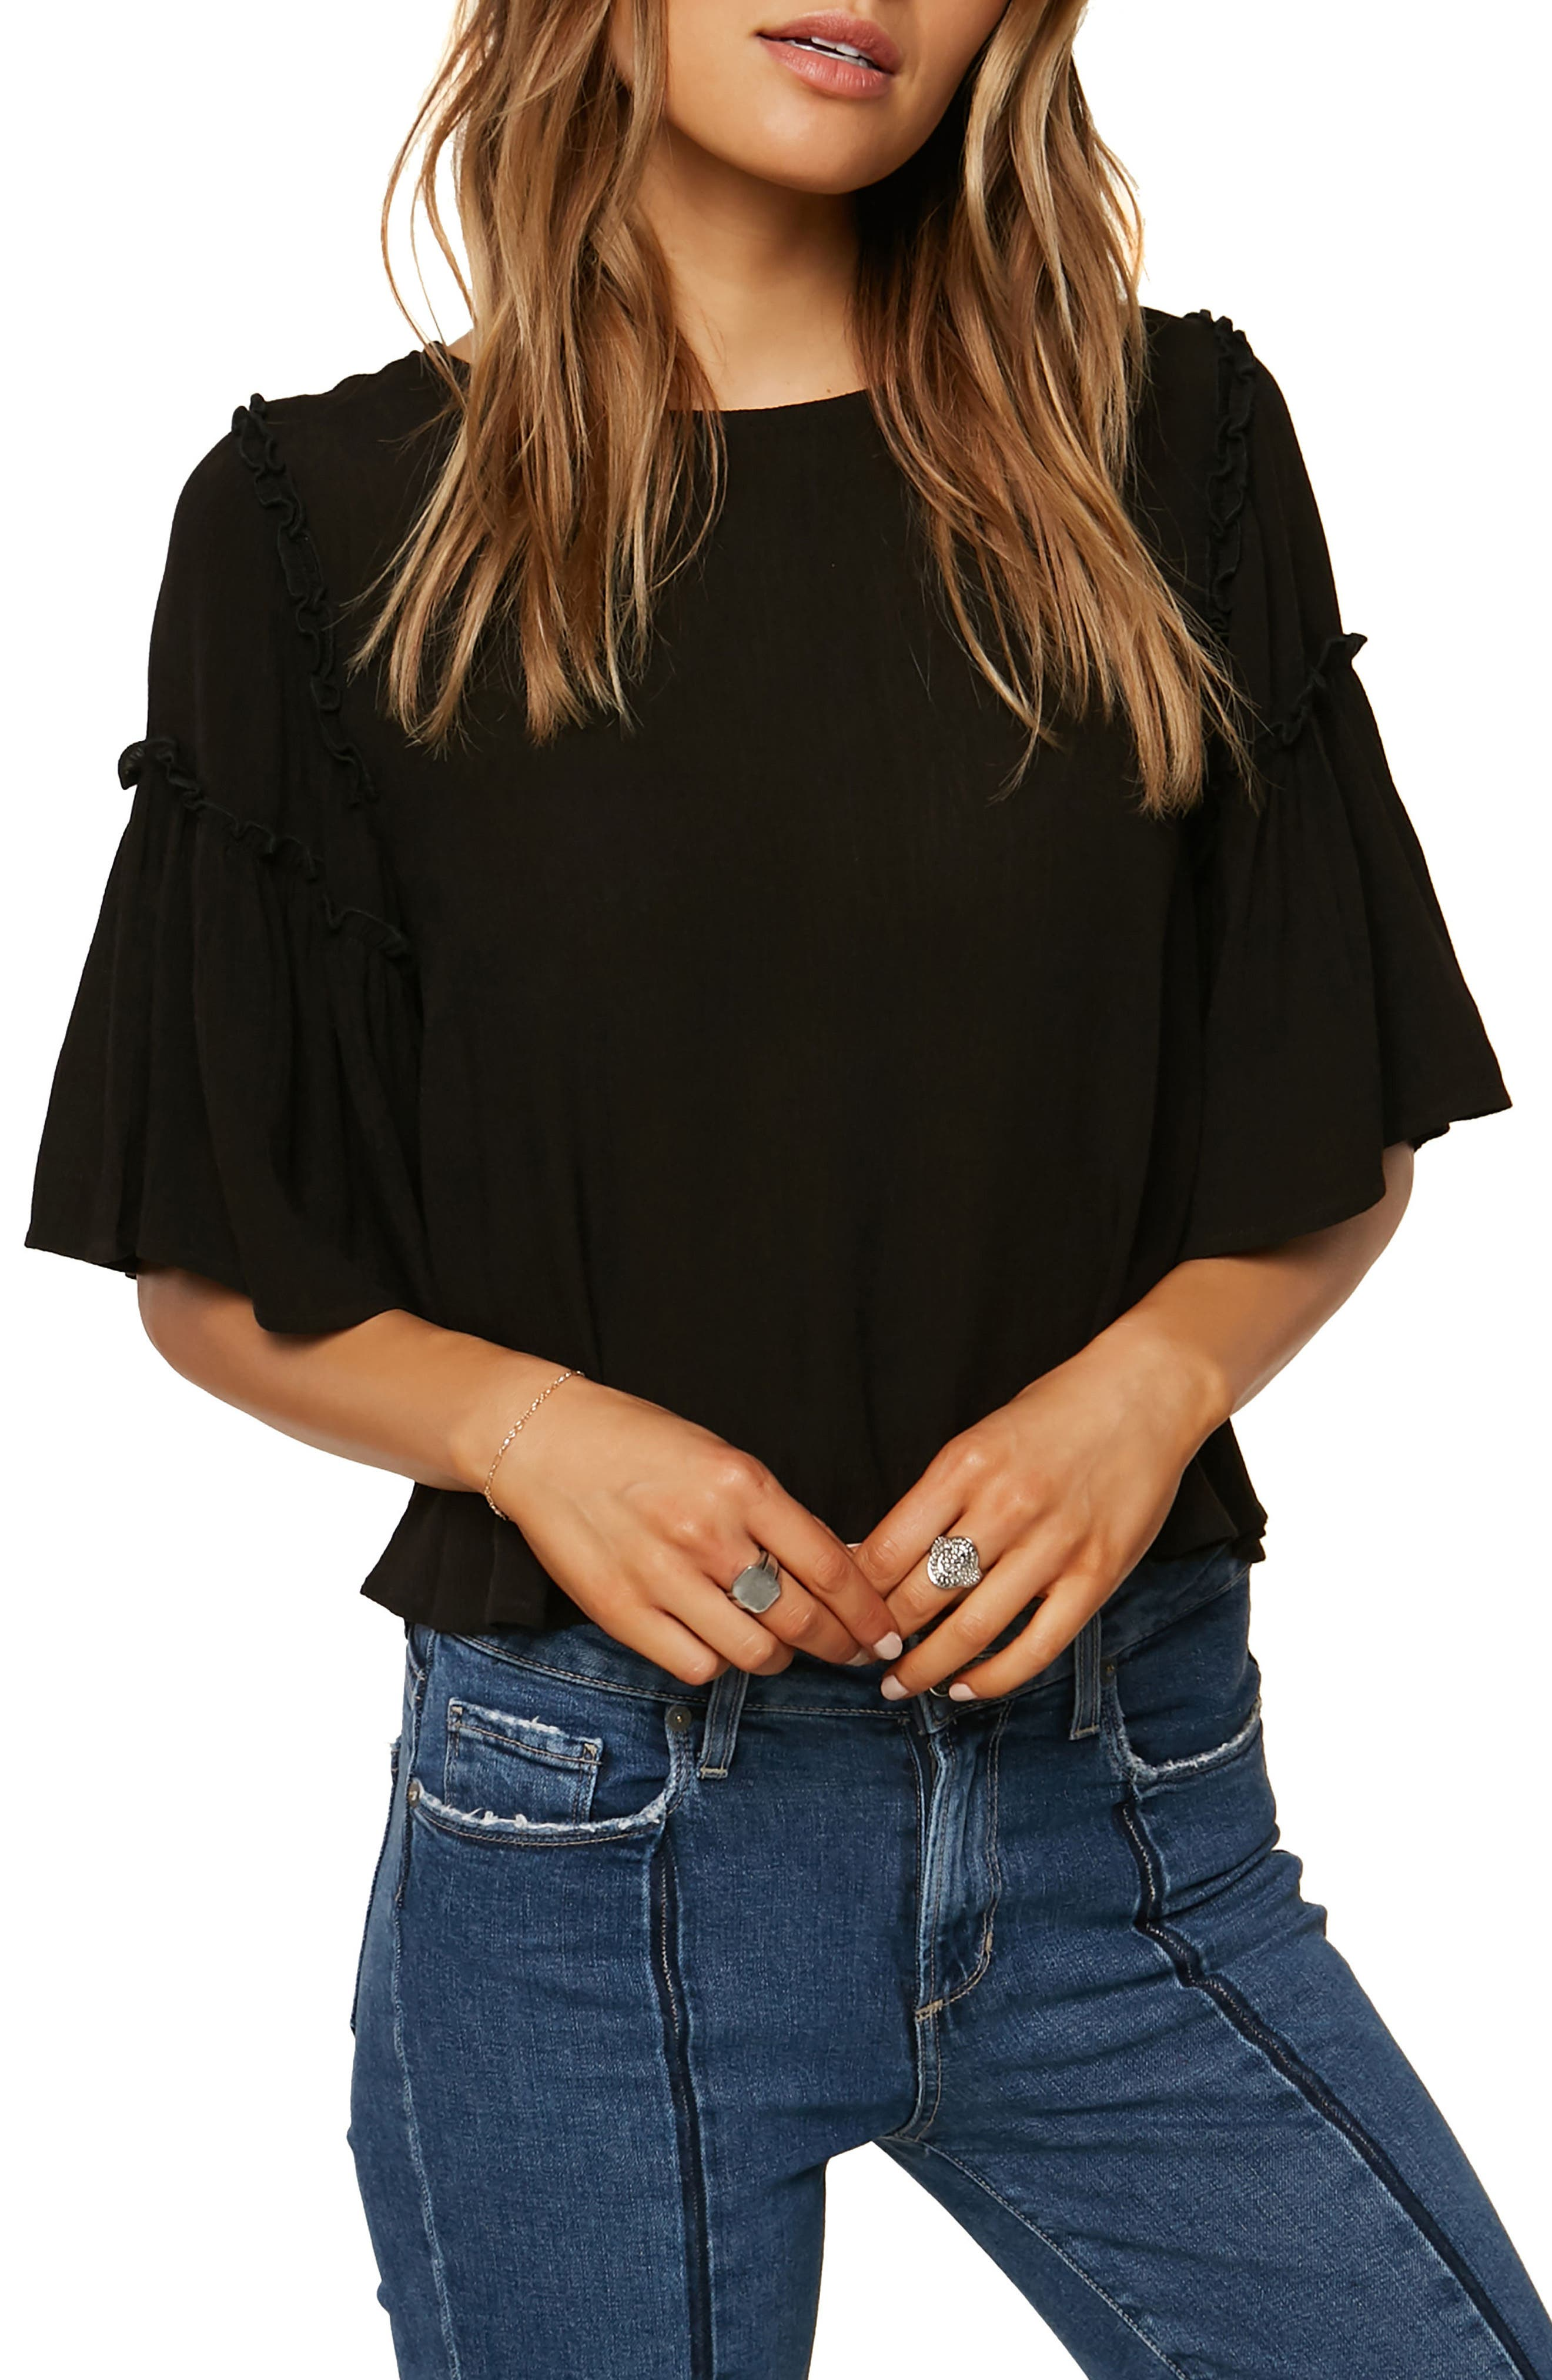 Brea Bell Sleeve Top,                             Main thumbnail 1, color,                             Black